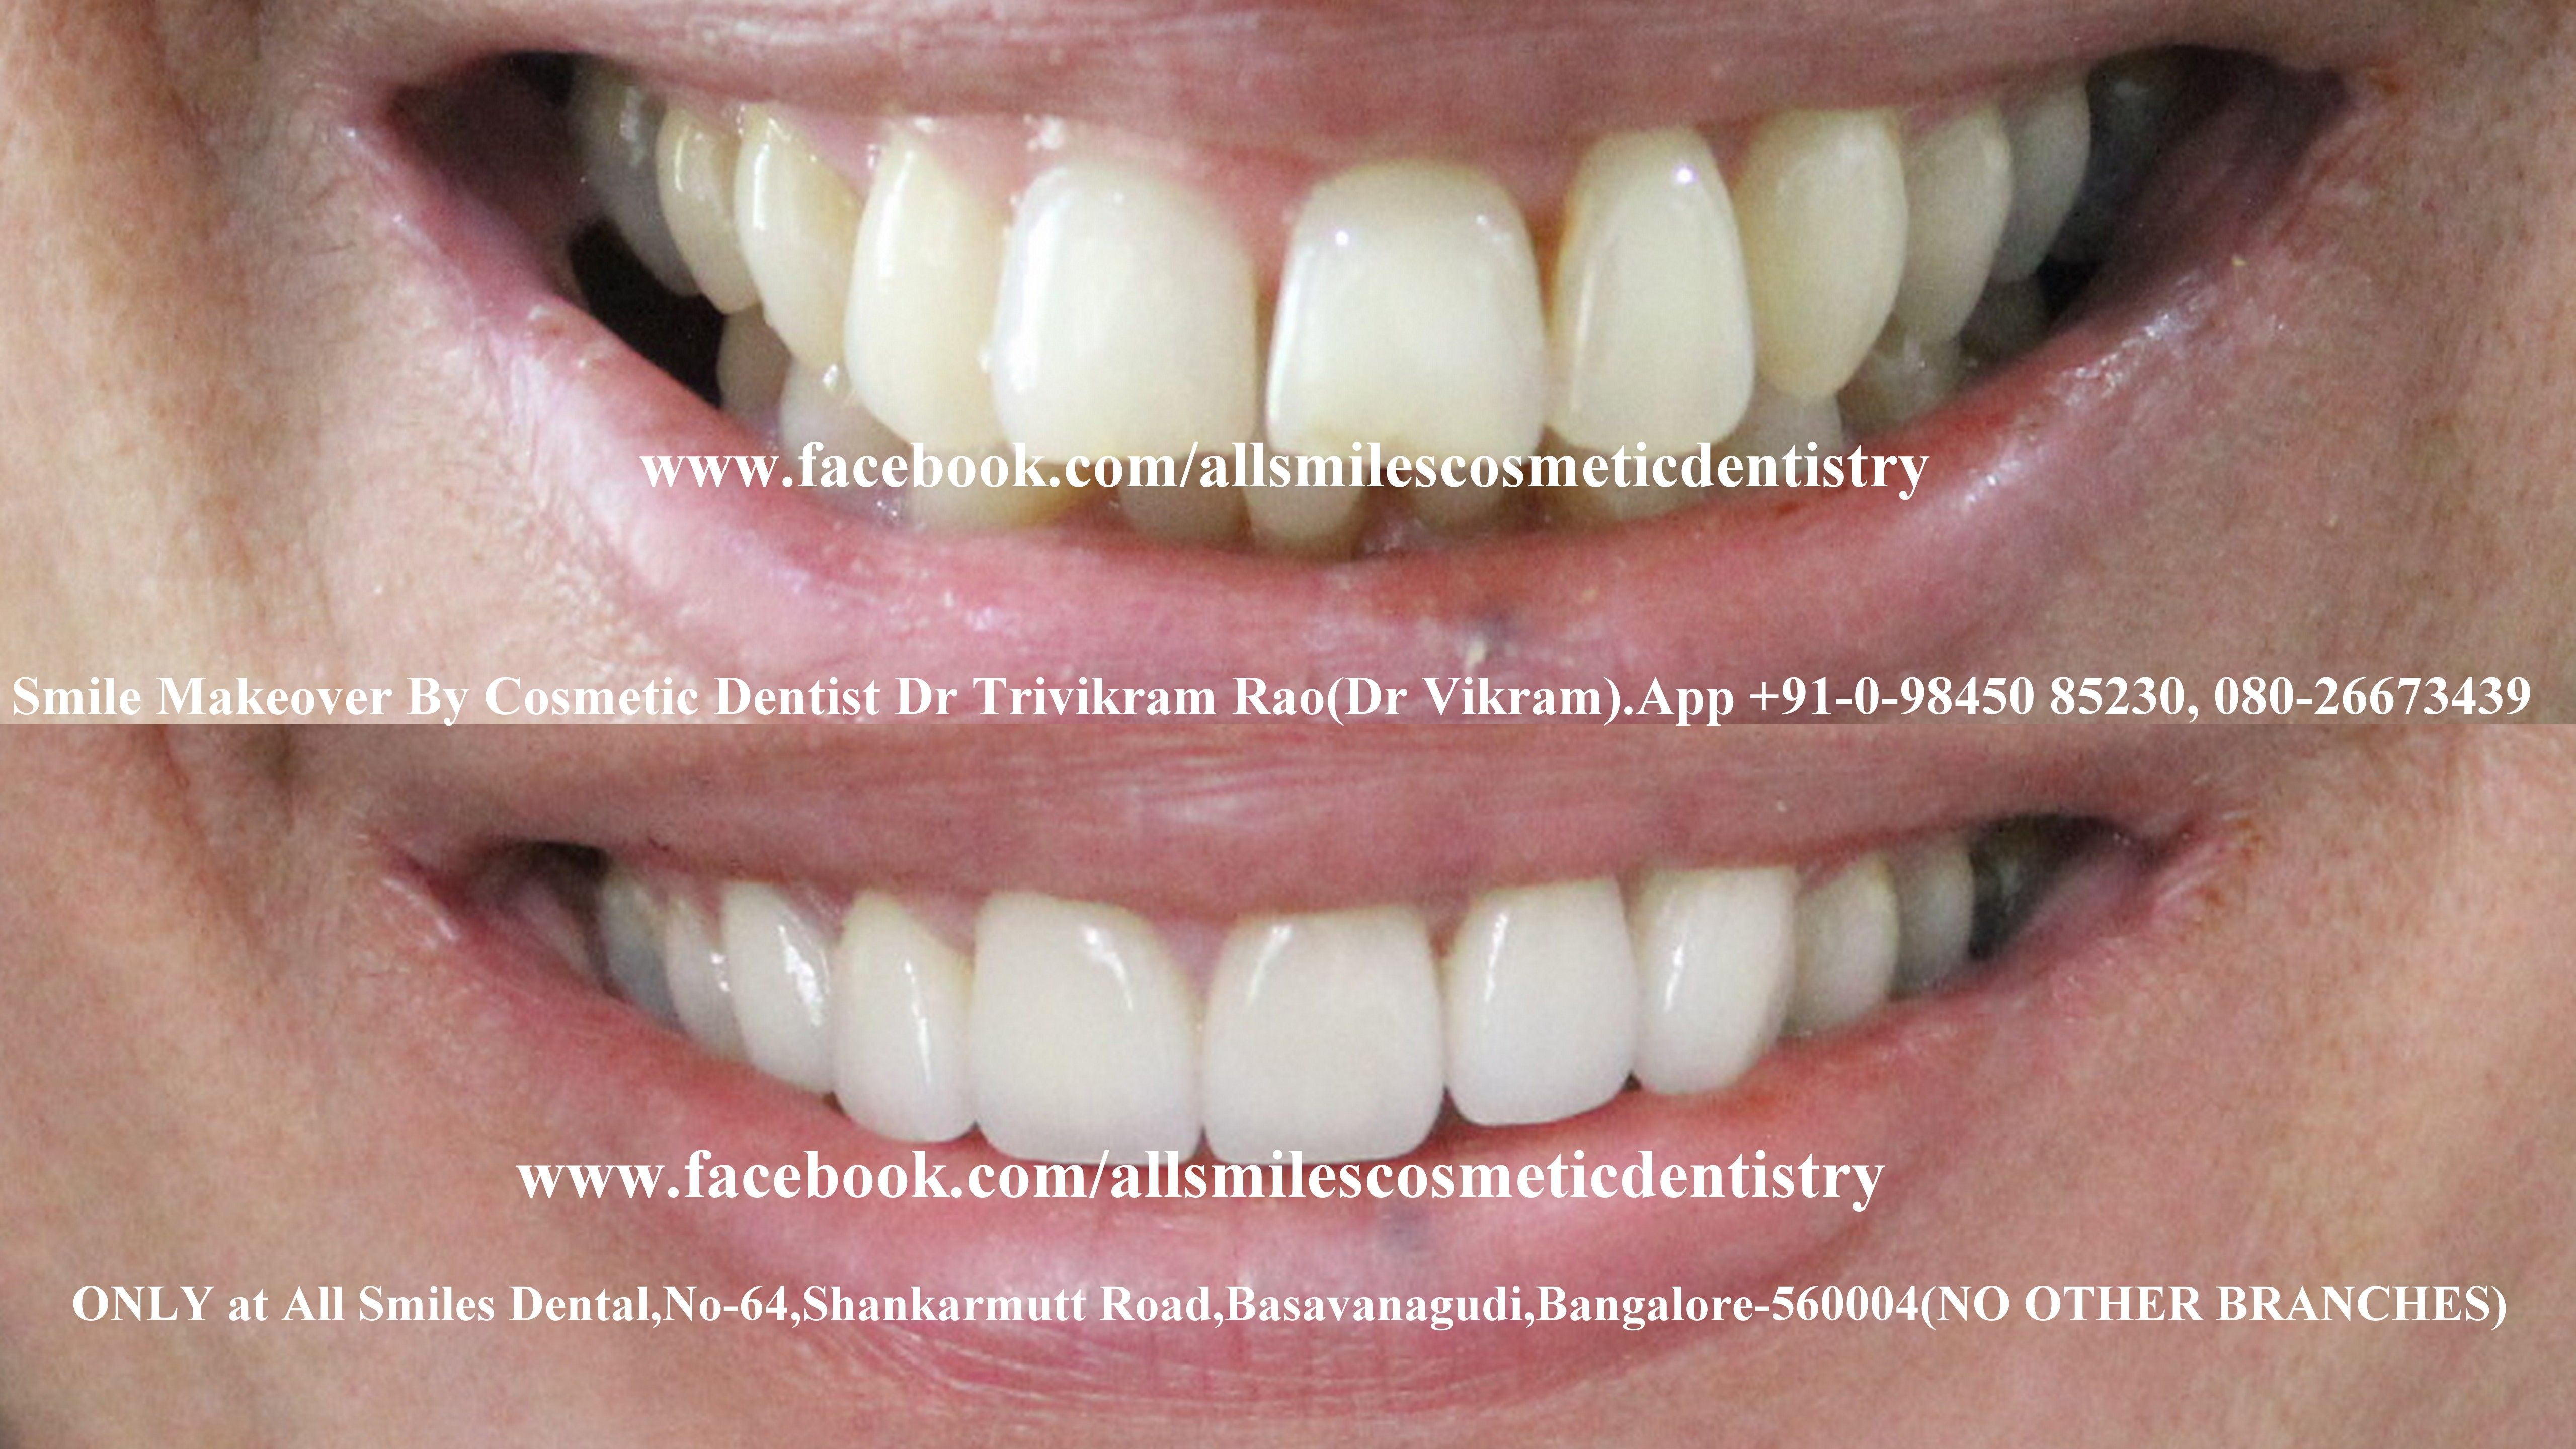 Smile makeovers by expert cosmetic dentist Dr Trivikram in